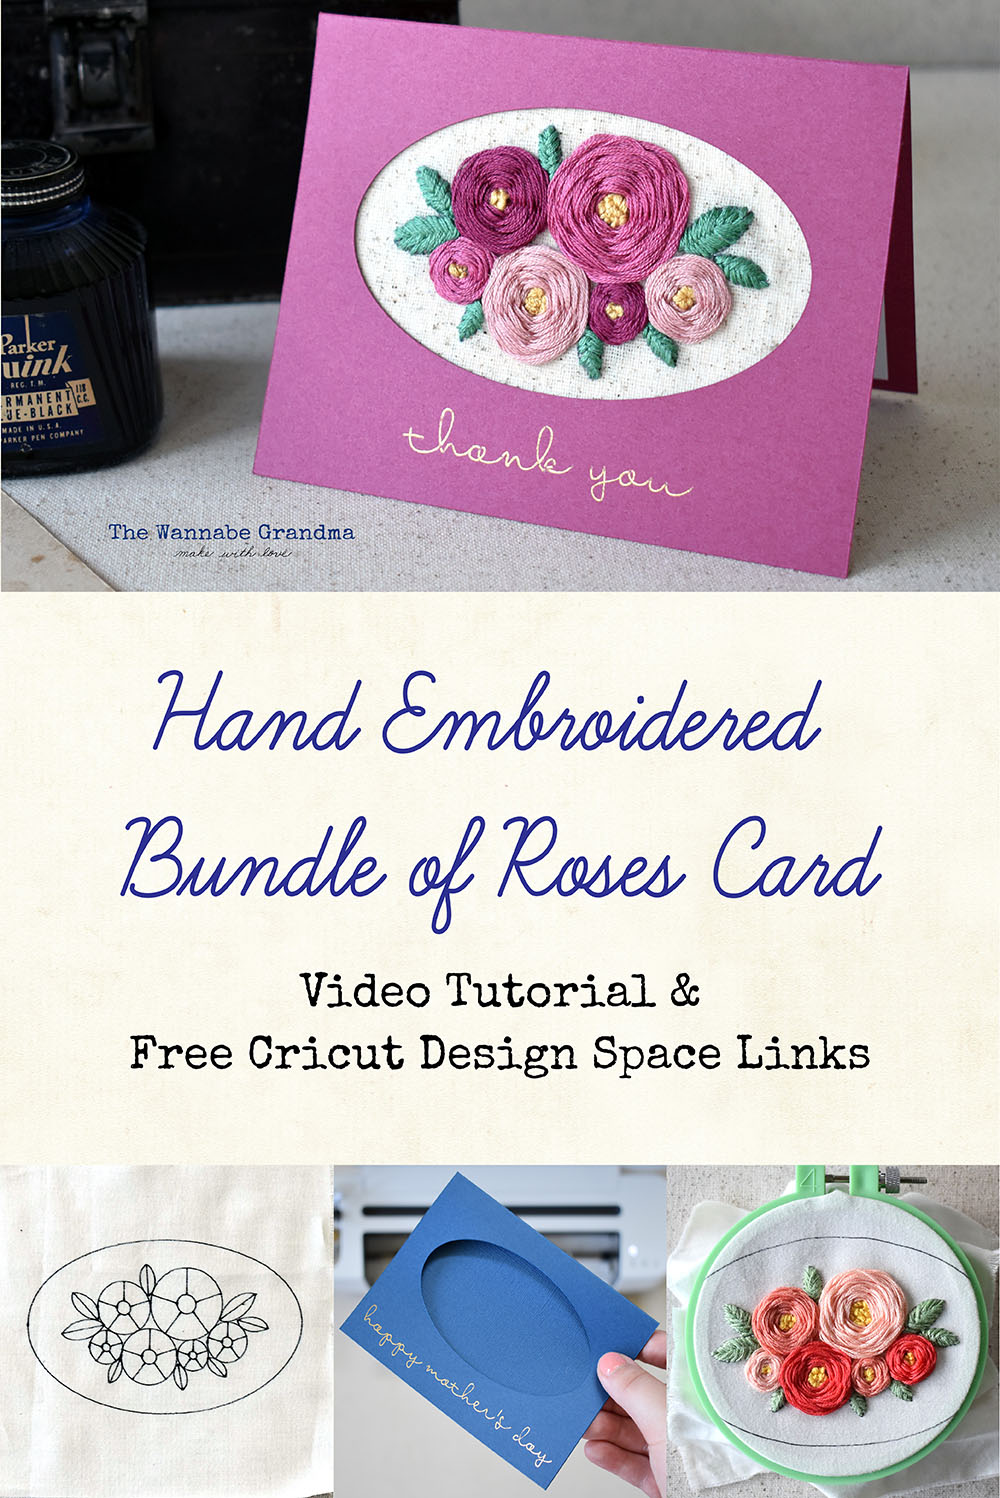 Hand Embroidered Bundle of Roses Card